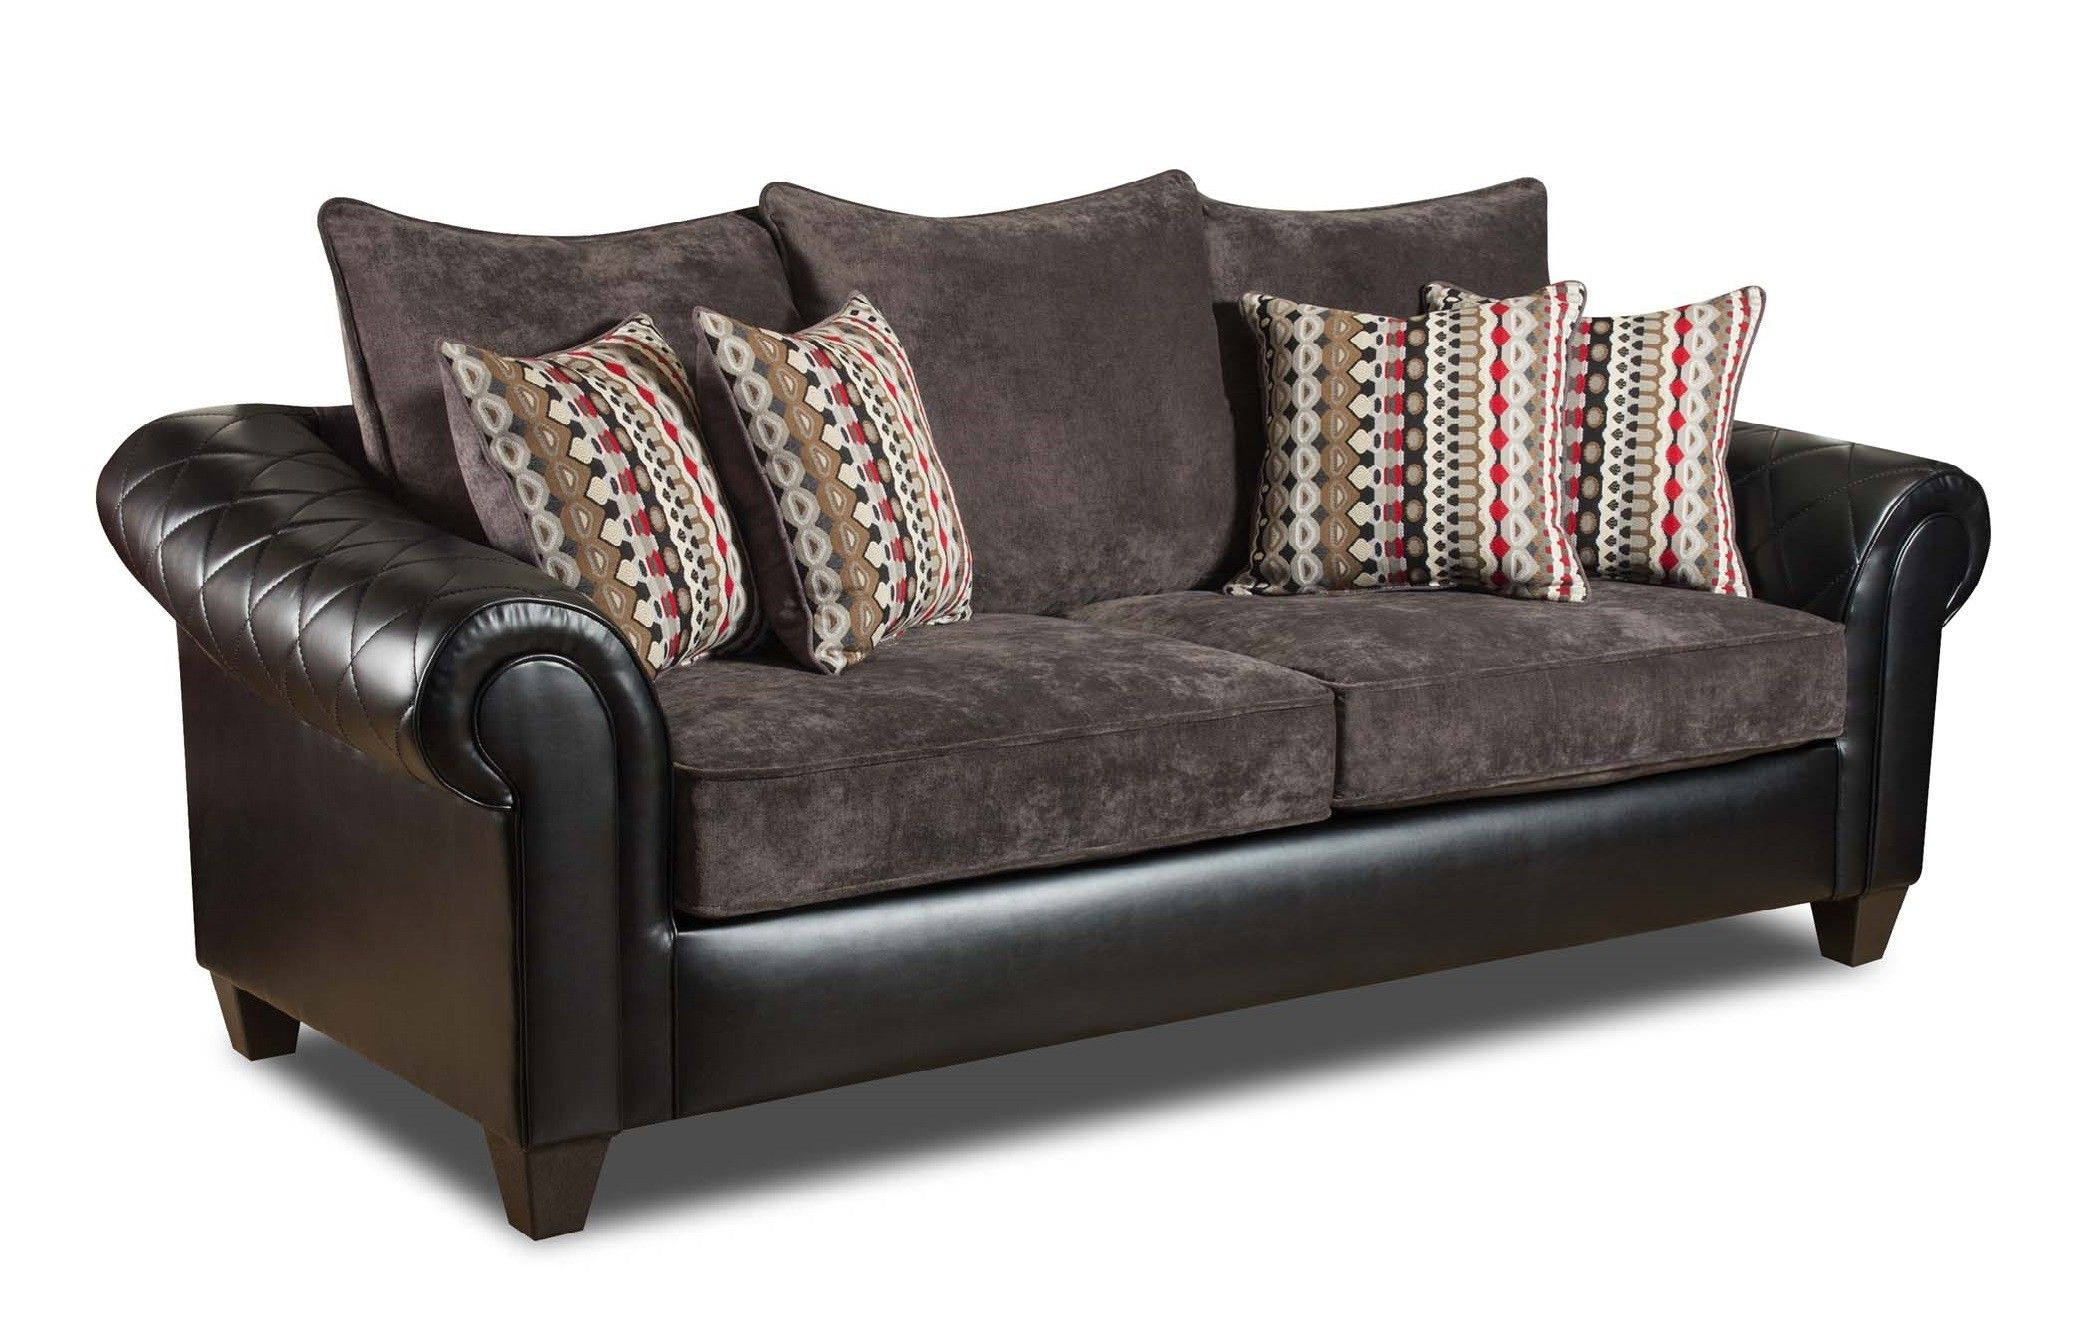 Afton Sofa In Ghana Black By Chelsea Home Furniture Sofas